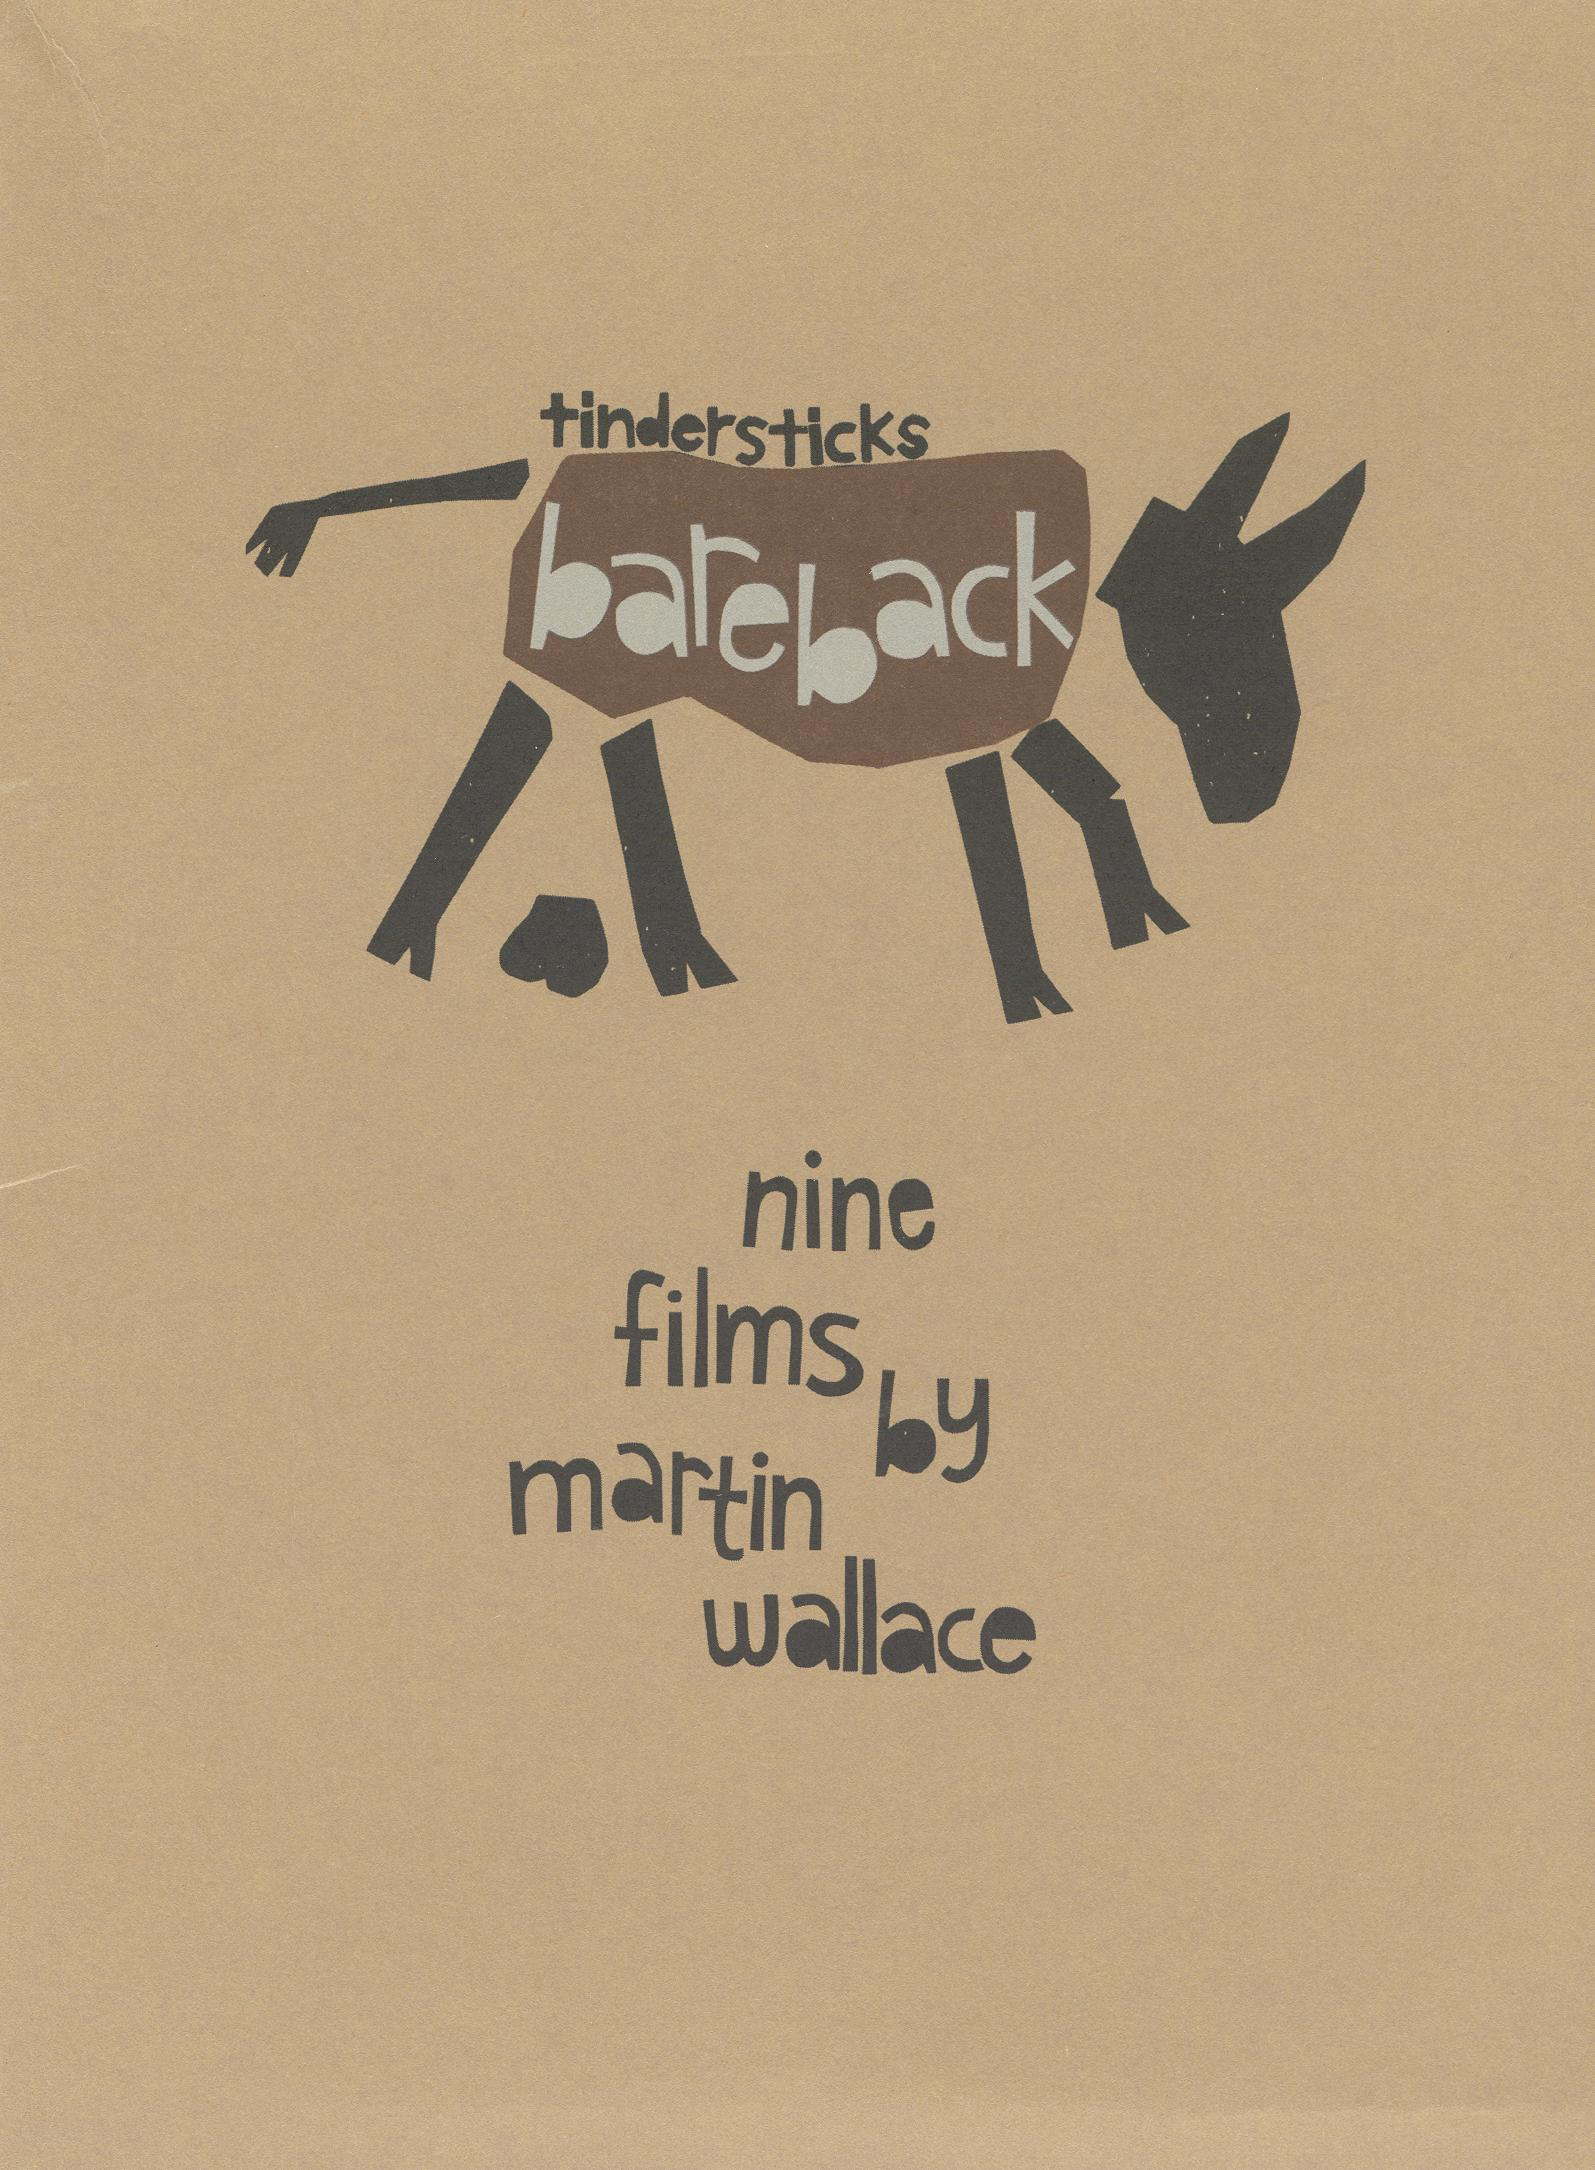 The Tindersticks: Bareback